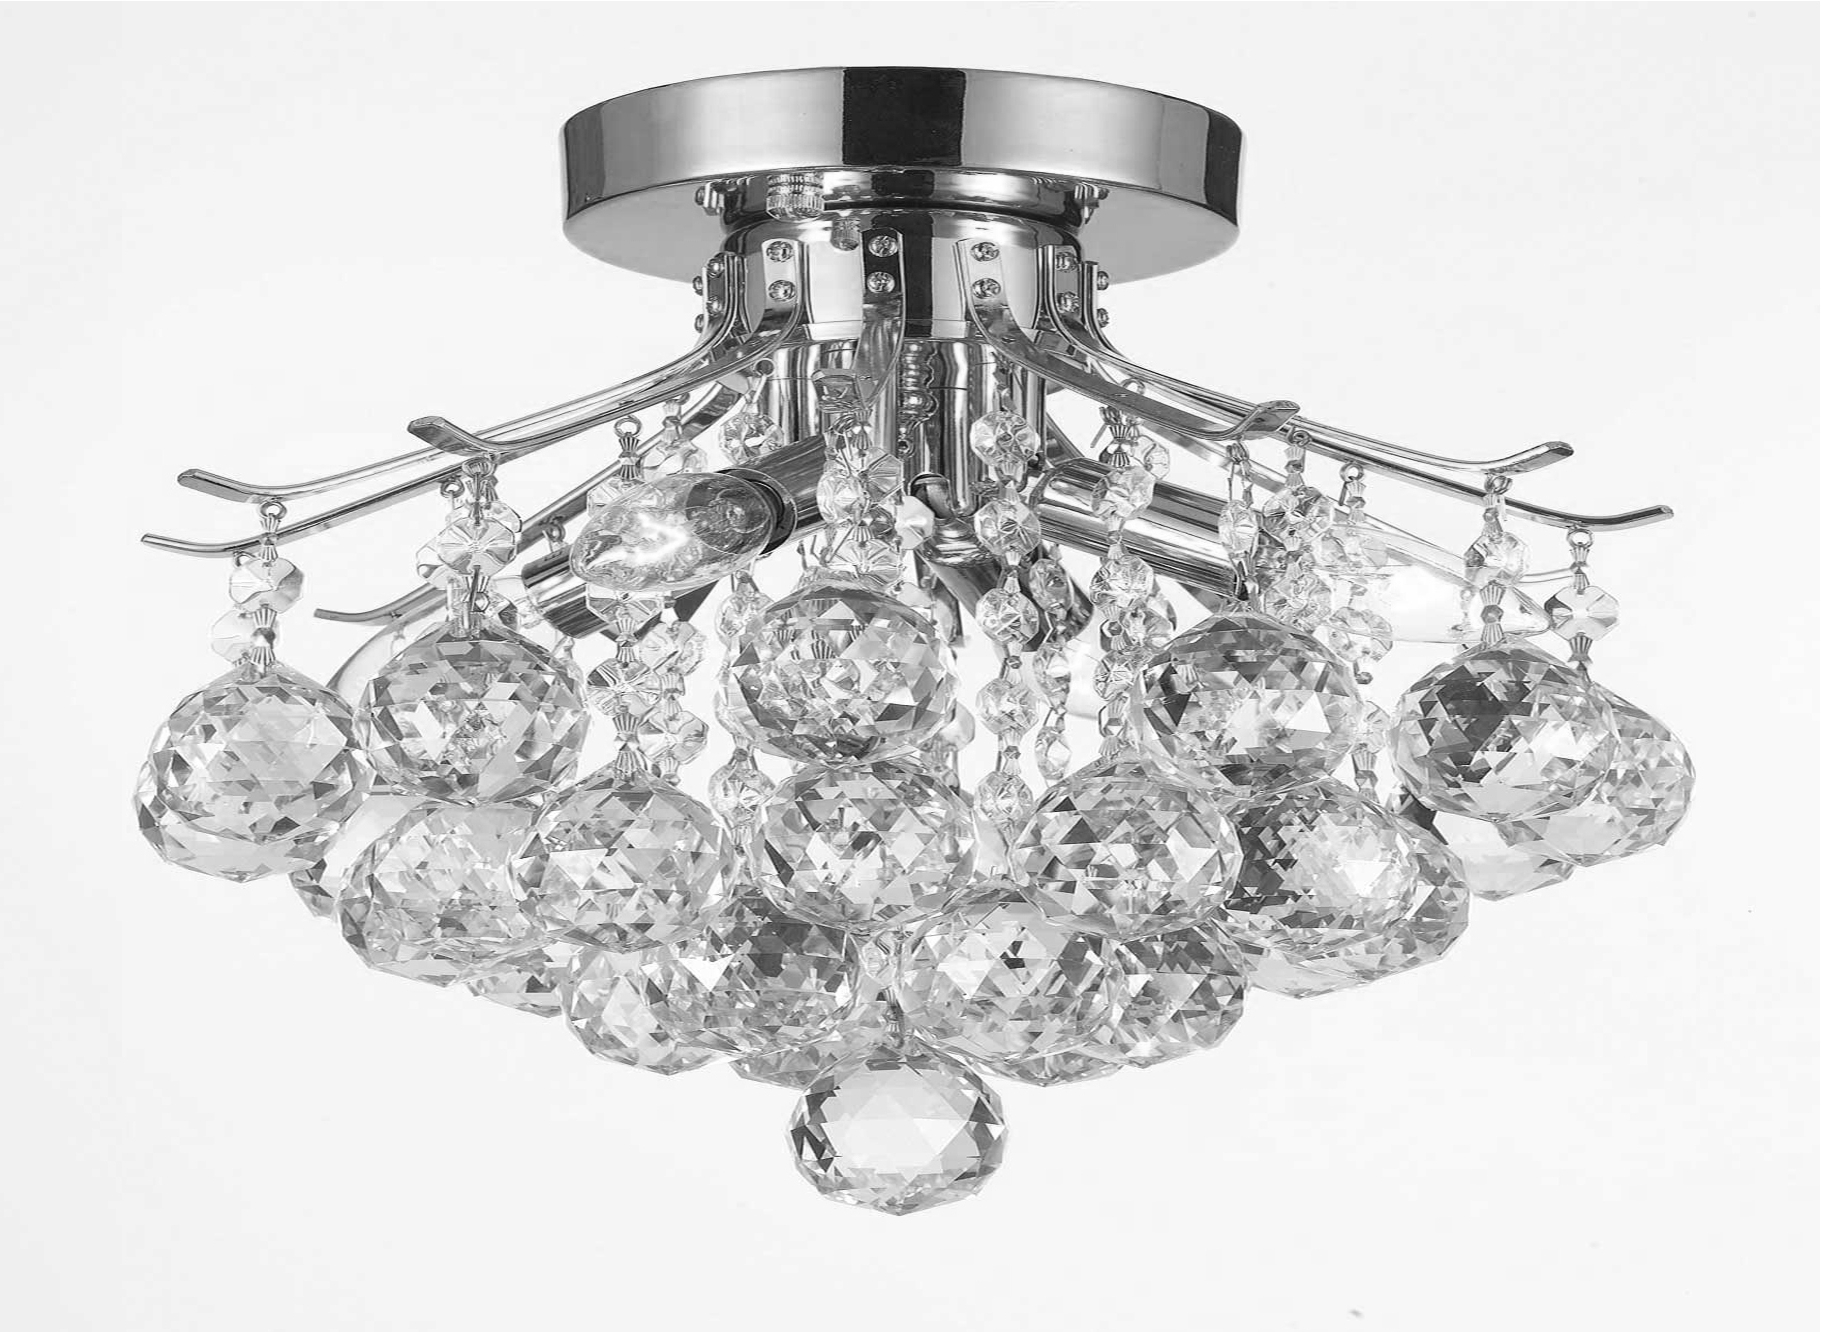 G7 Cs/1132/4 Gallery Empire Style Empire Crystal Chandelier With Most Up To Date Wall Mount Crystal Chandeliers (View 2 of 15)